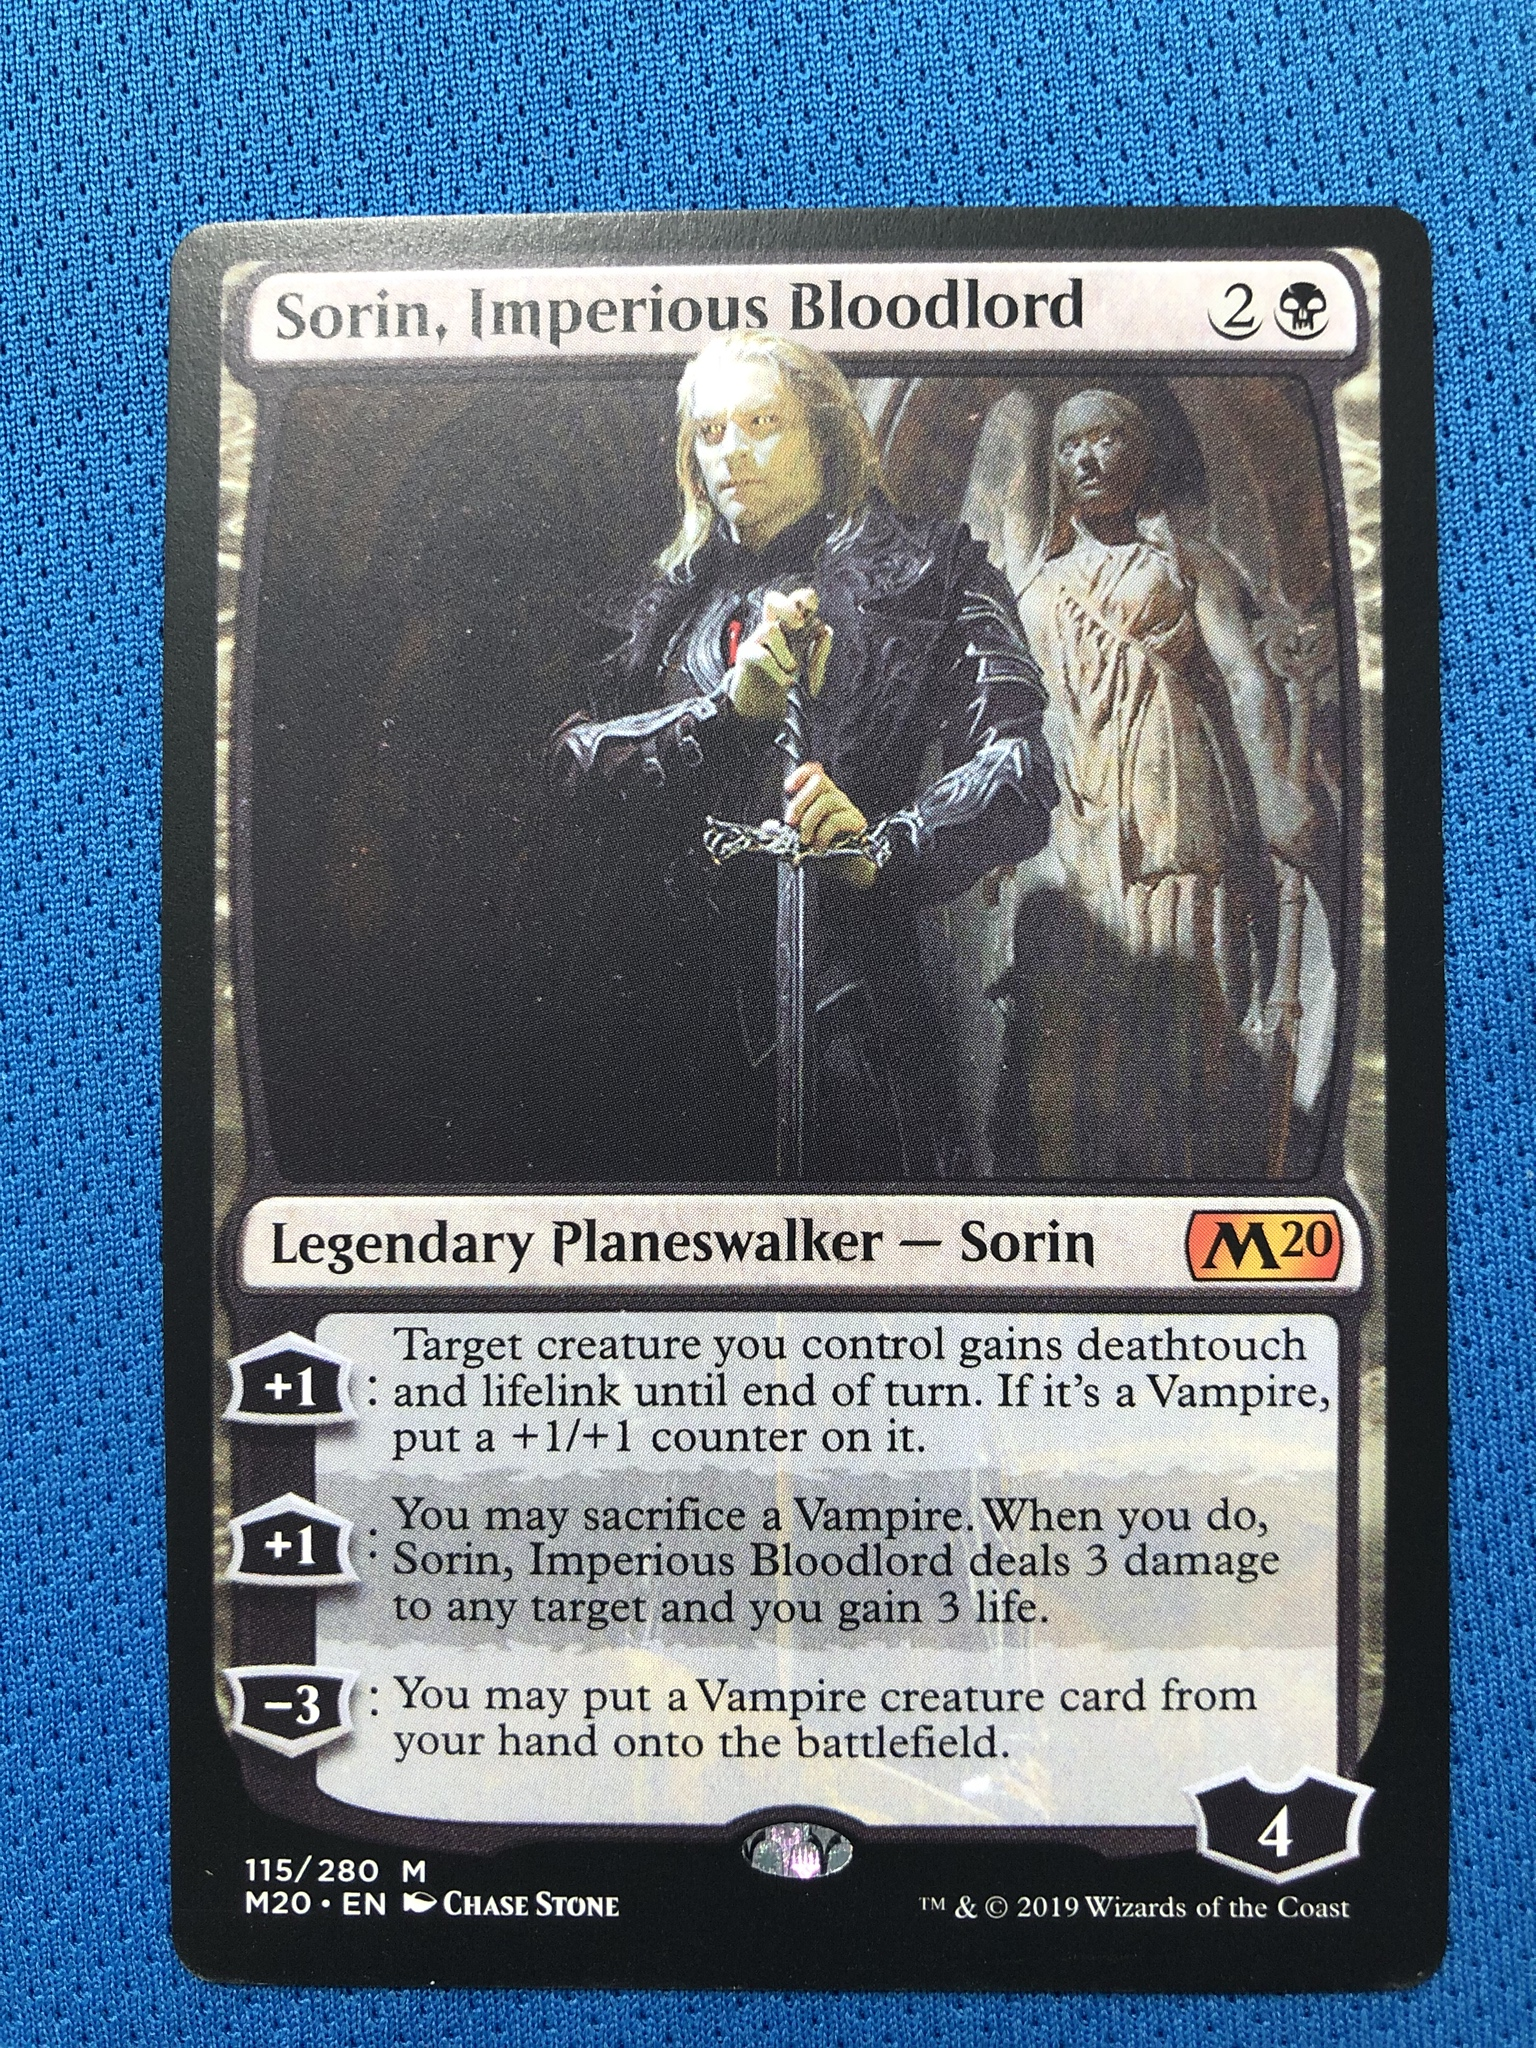 Sorin, Imperious Bloodlord	M20 Hologram Magician ProxyKing 8.0 VIP The Proxy Cards To Gathering Every Single Mg Card.